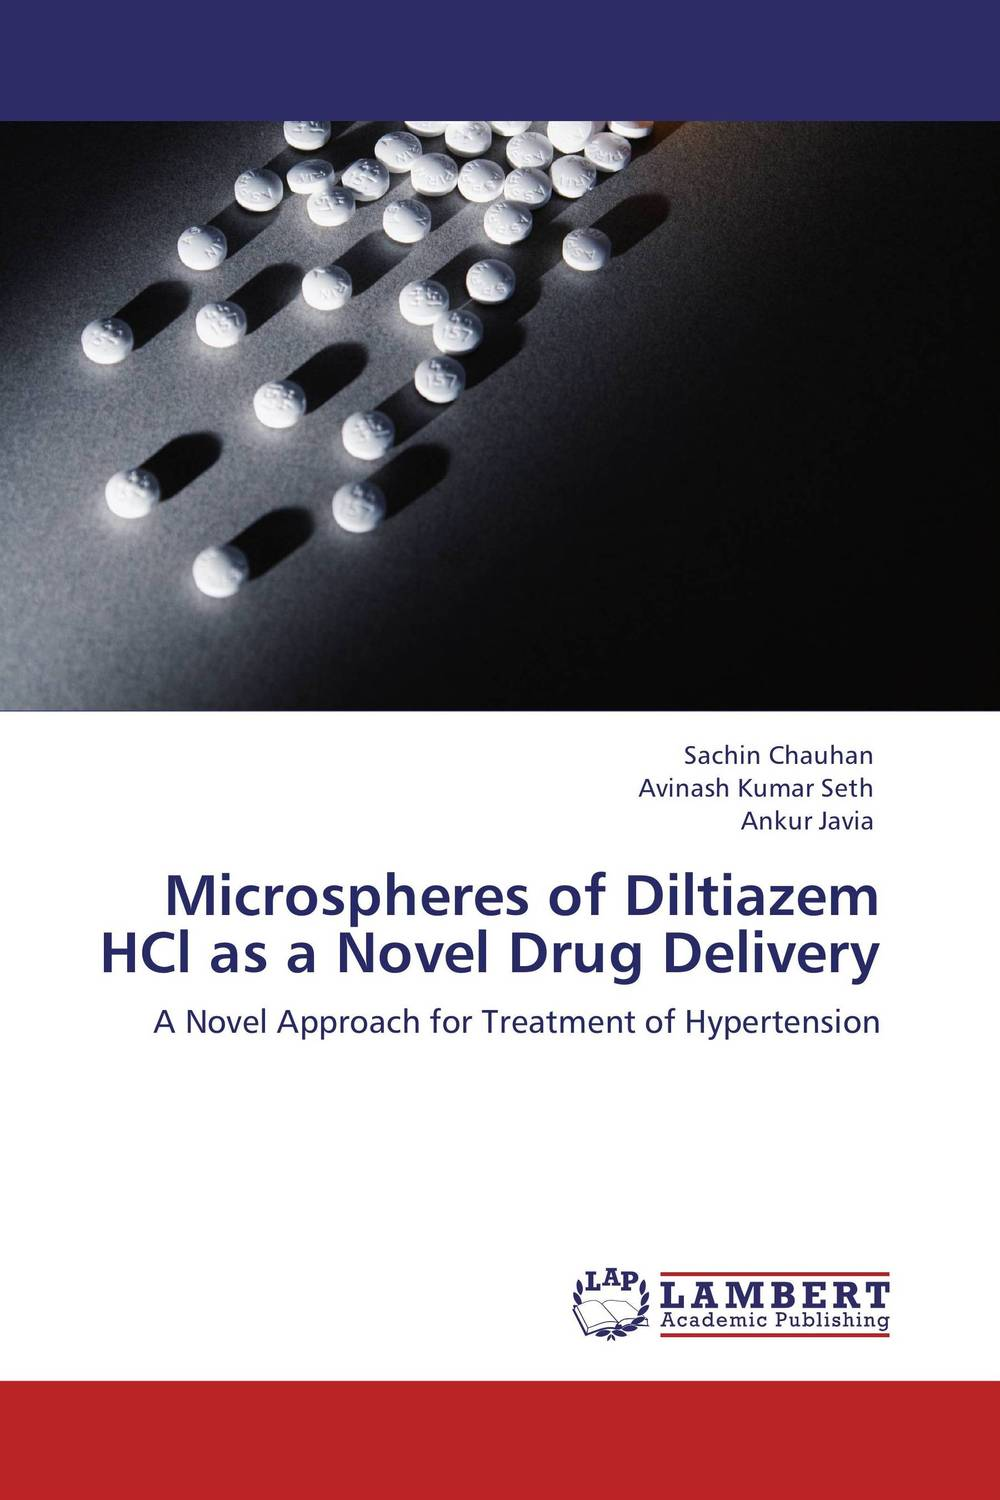 Microspheres of Diltiazem HCl as a Novel Drug Delivery the lonely polygamist – a novel